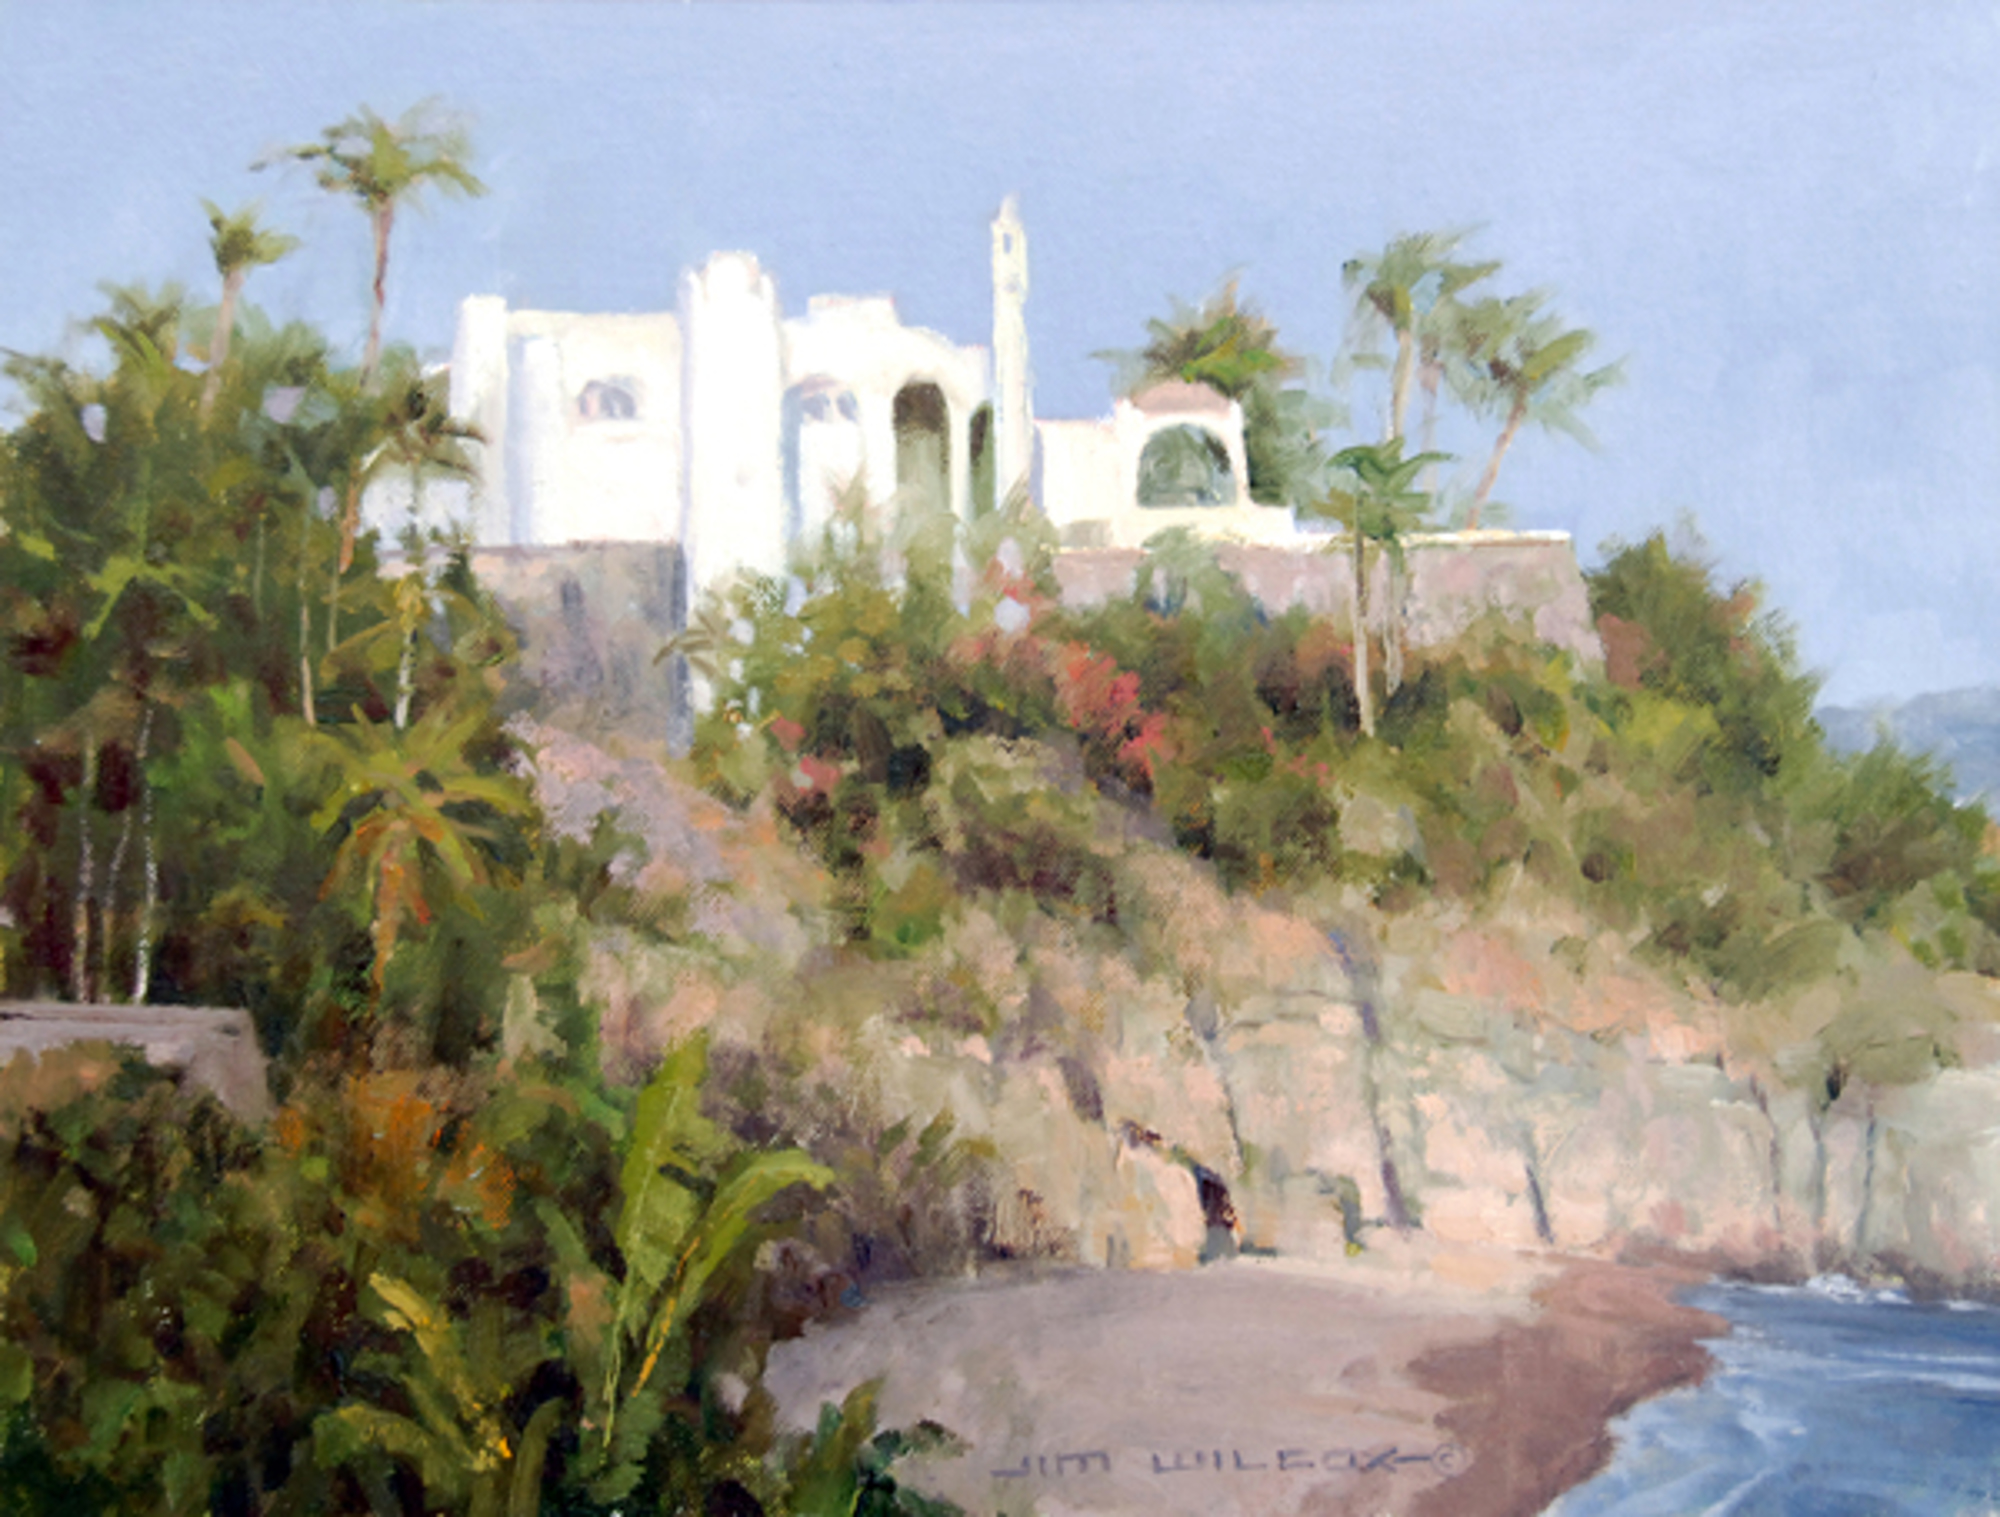 La Atalaya The Watchtower (Mexico house) by Jim Wilcox